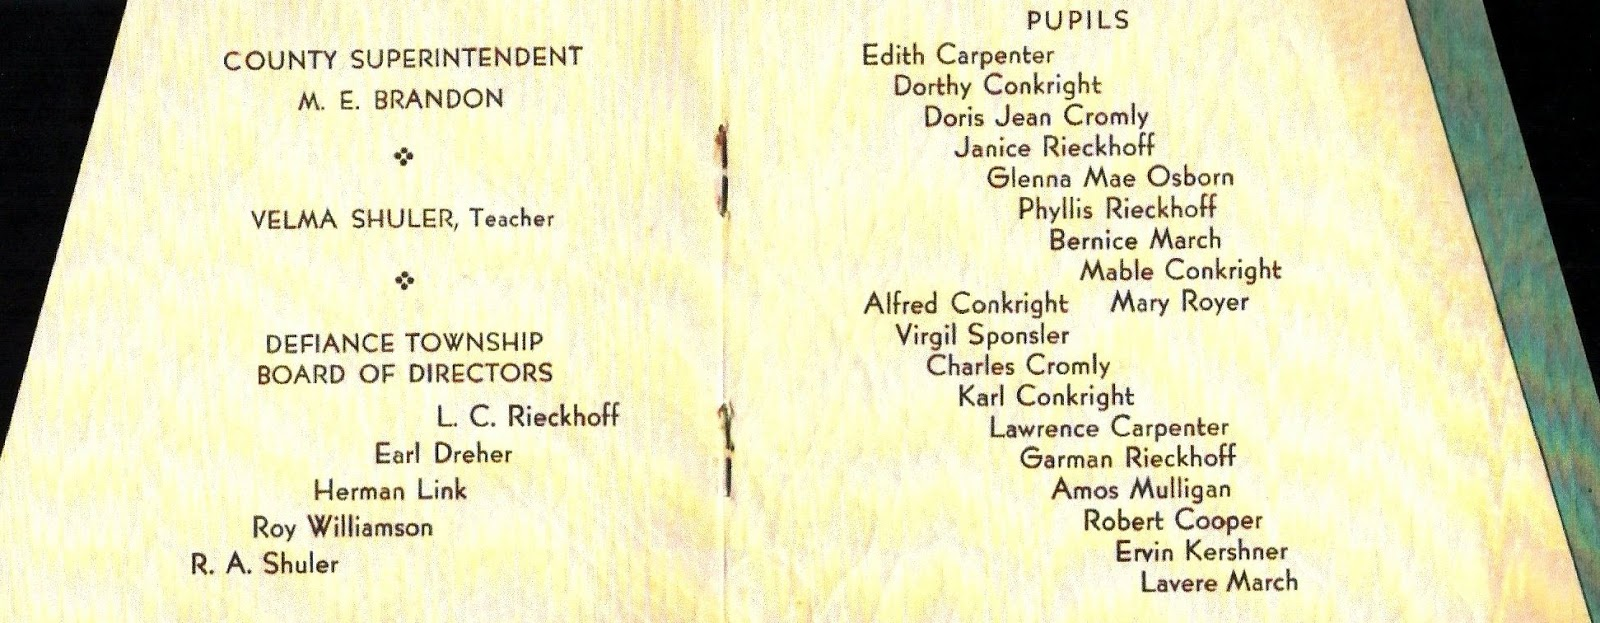 Conkright Family Trees, Crests, Genealogy, DNA, More